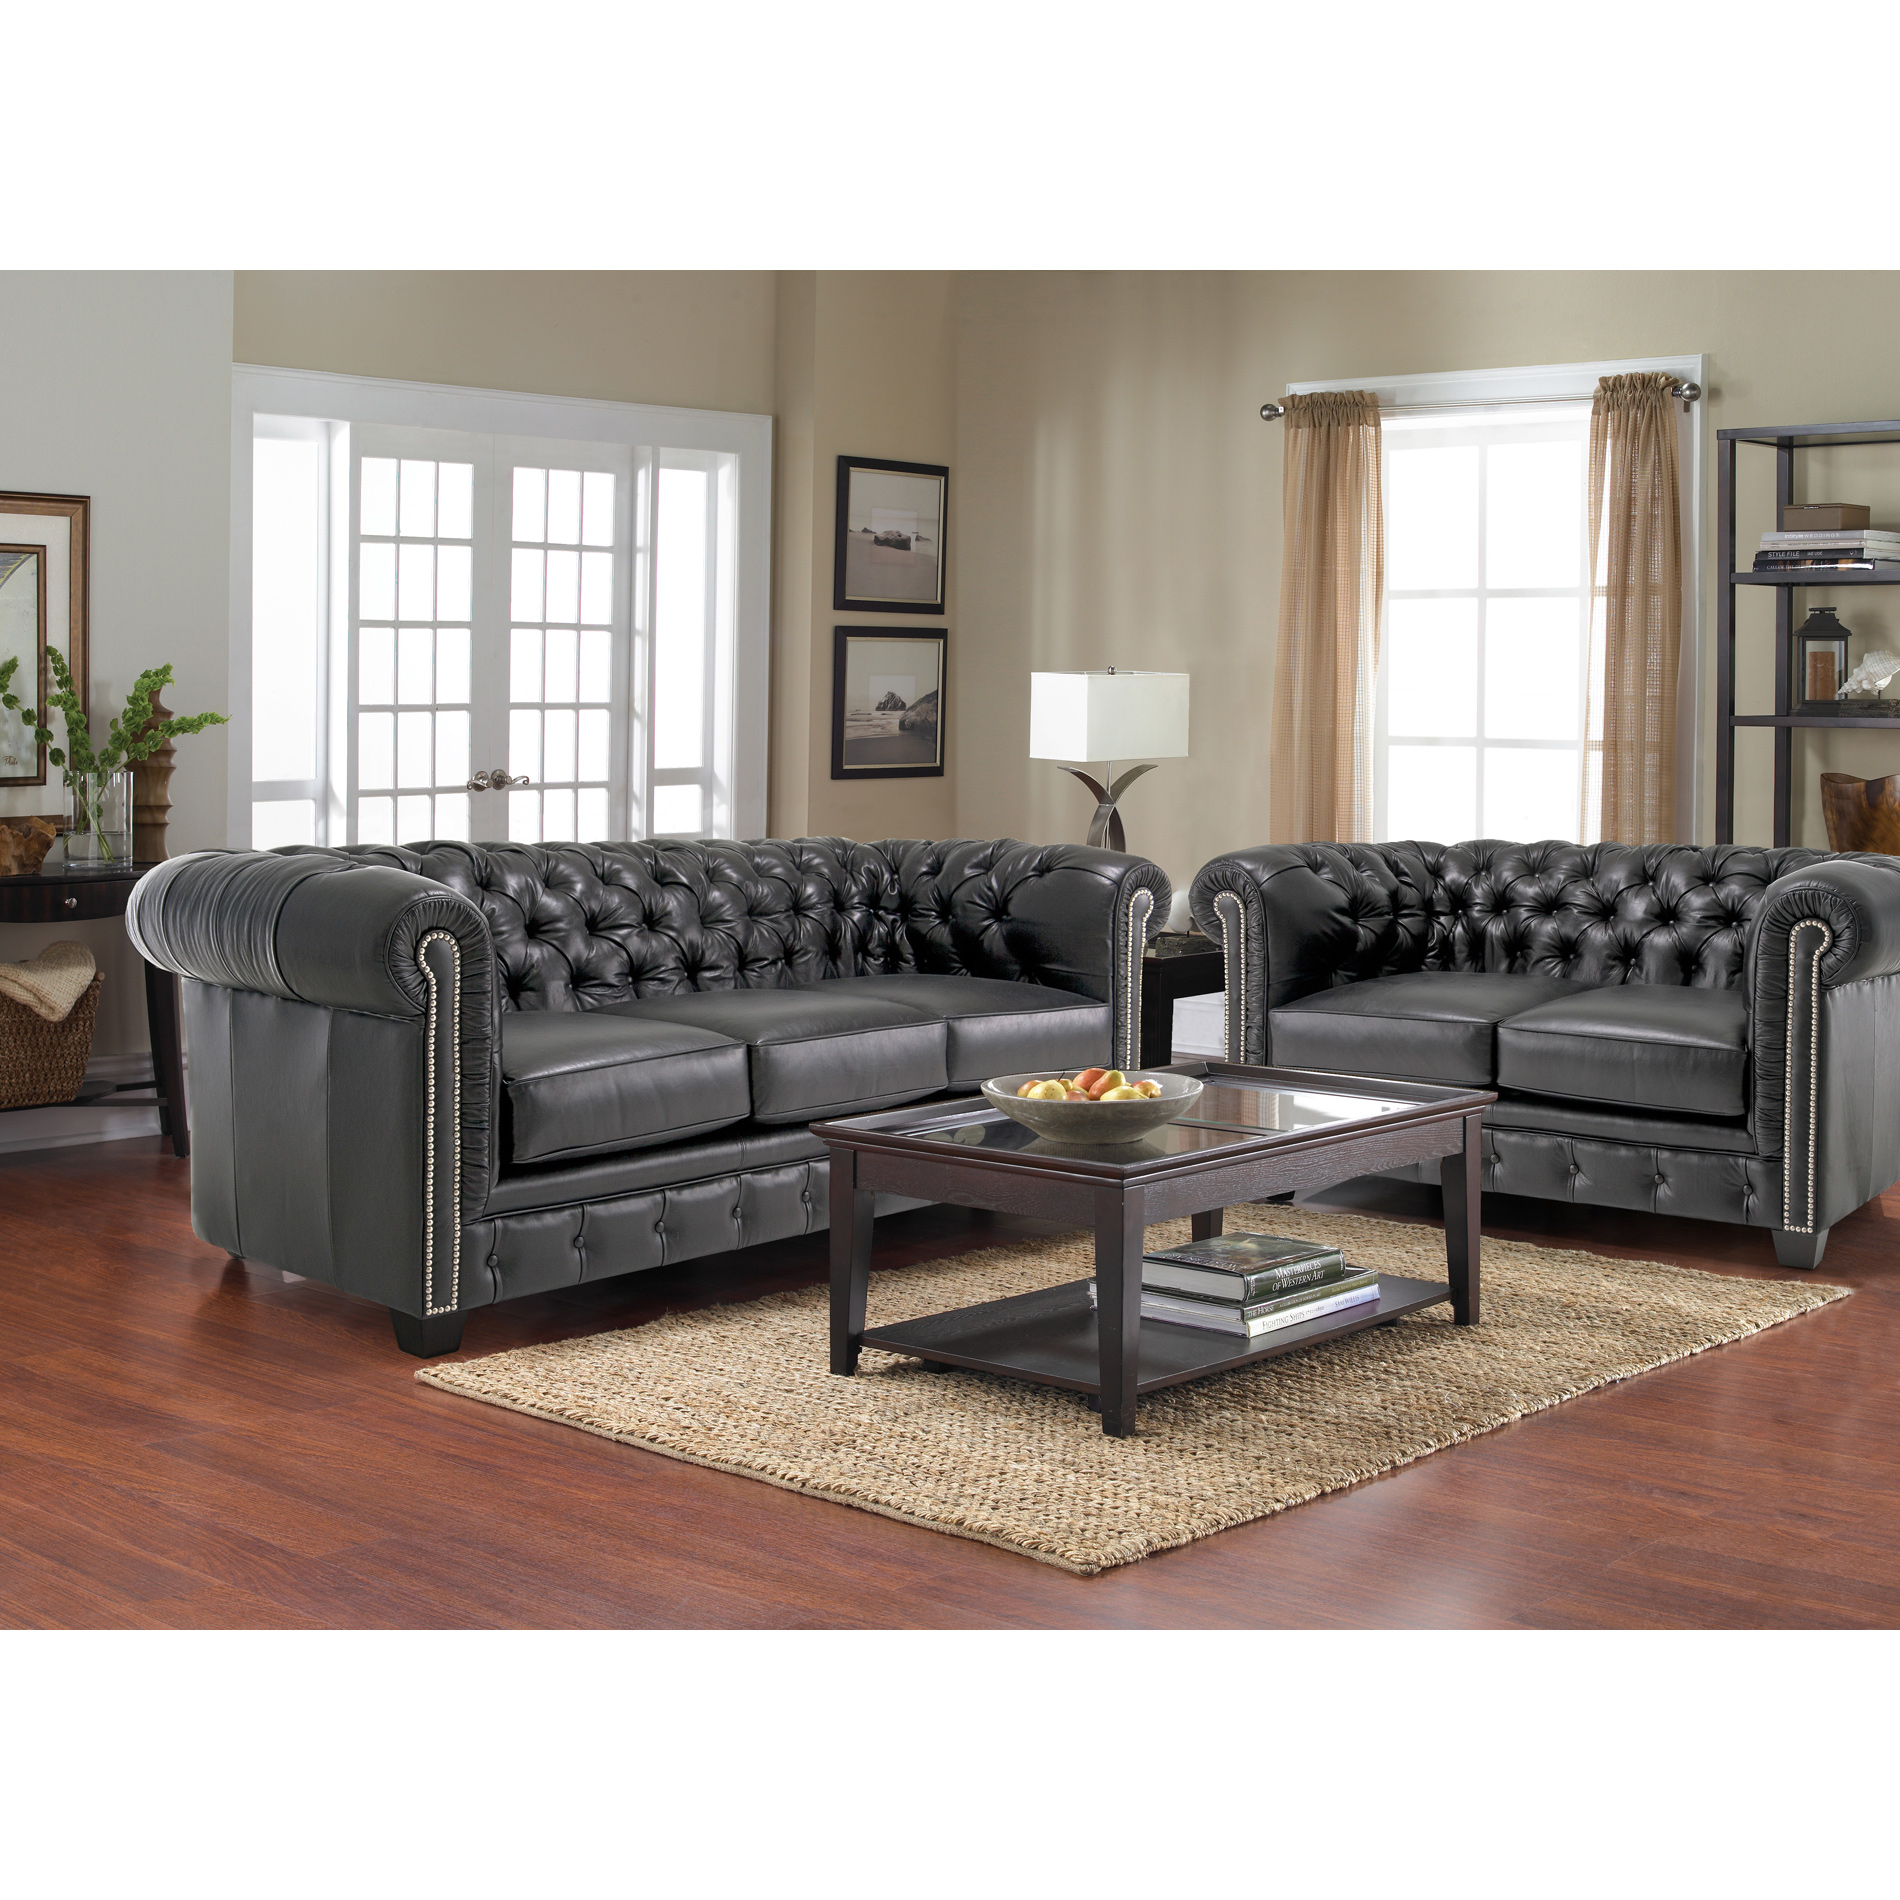 Sofaweb Han Tufted Black Italian Chesterfield Leather Sofa And Loveseat